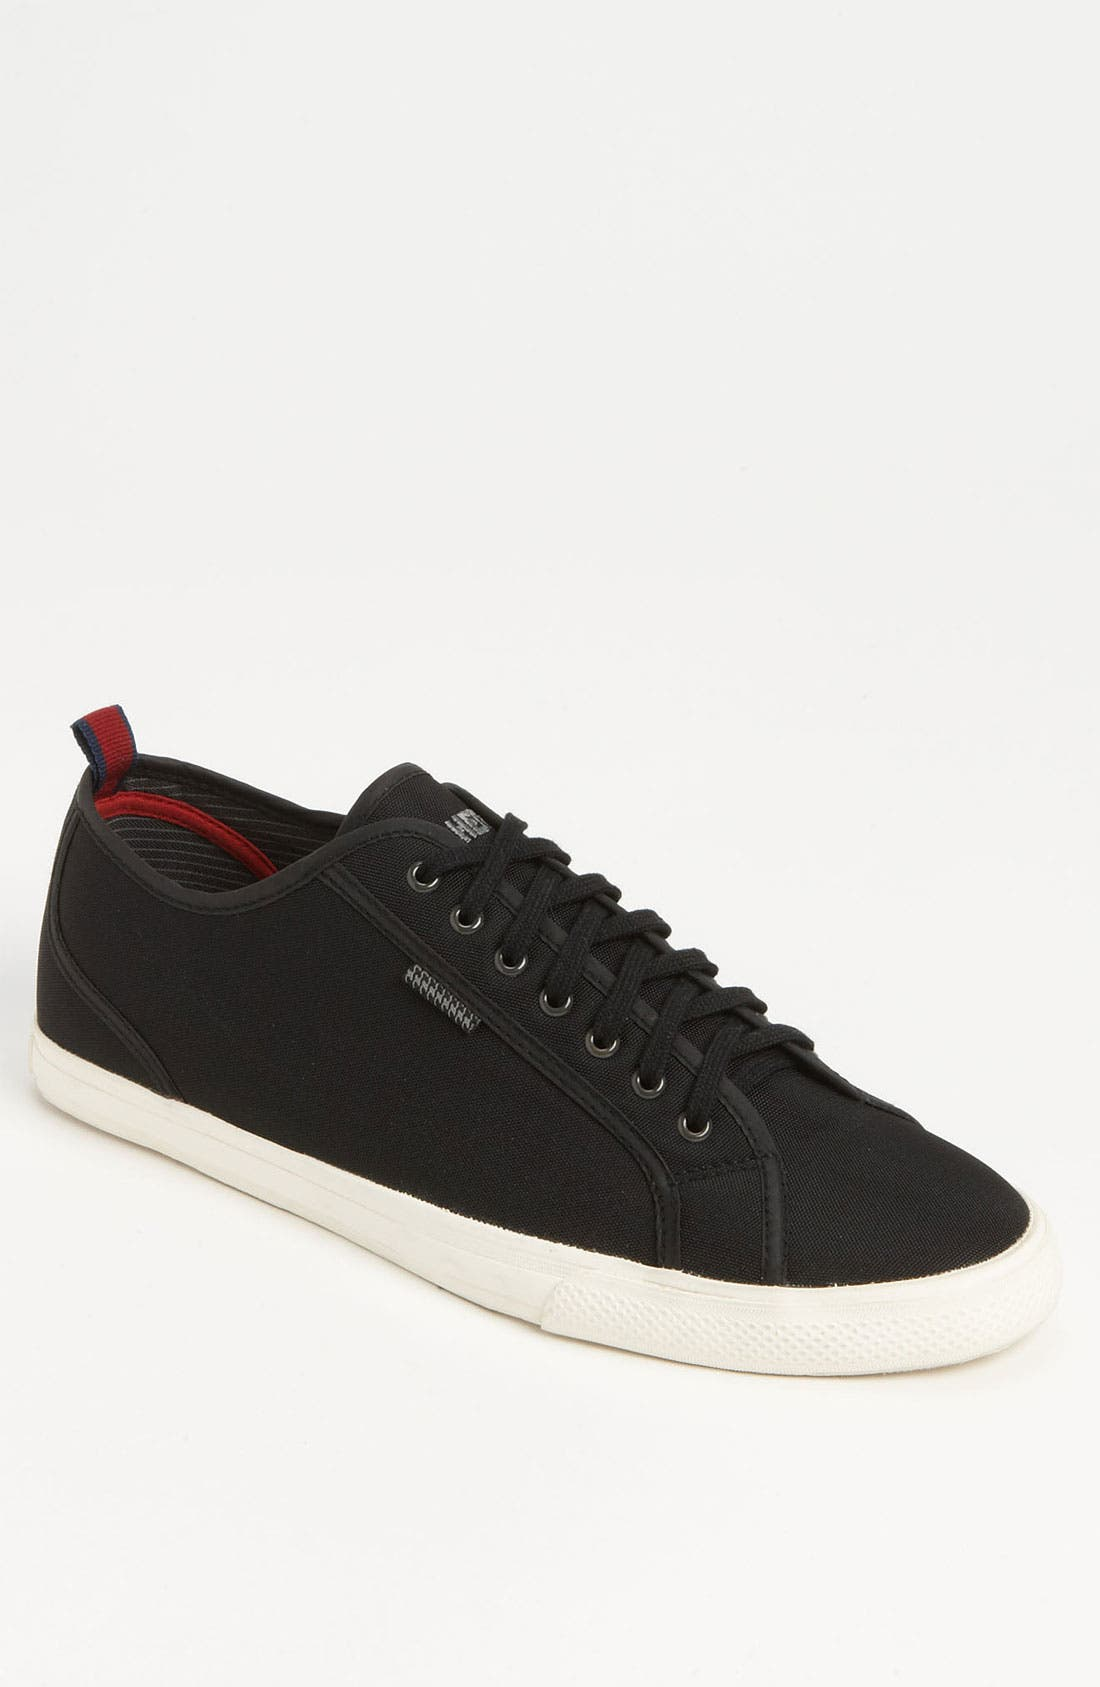 Alternate Image 1 Selected - Ben Sherman 'Breckon' Sneaker (Men)